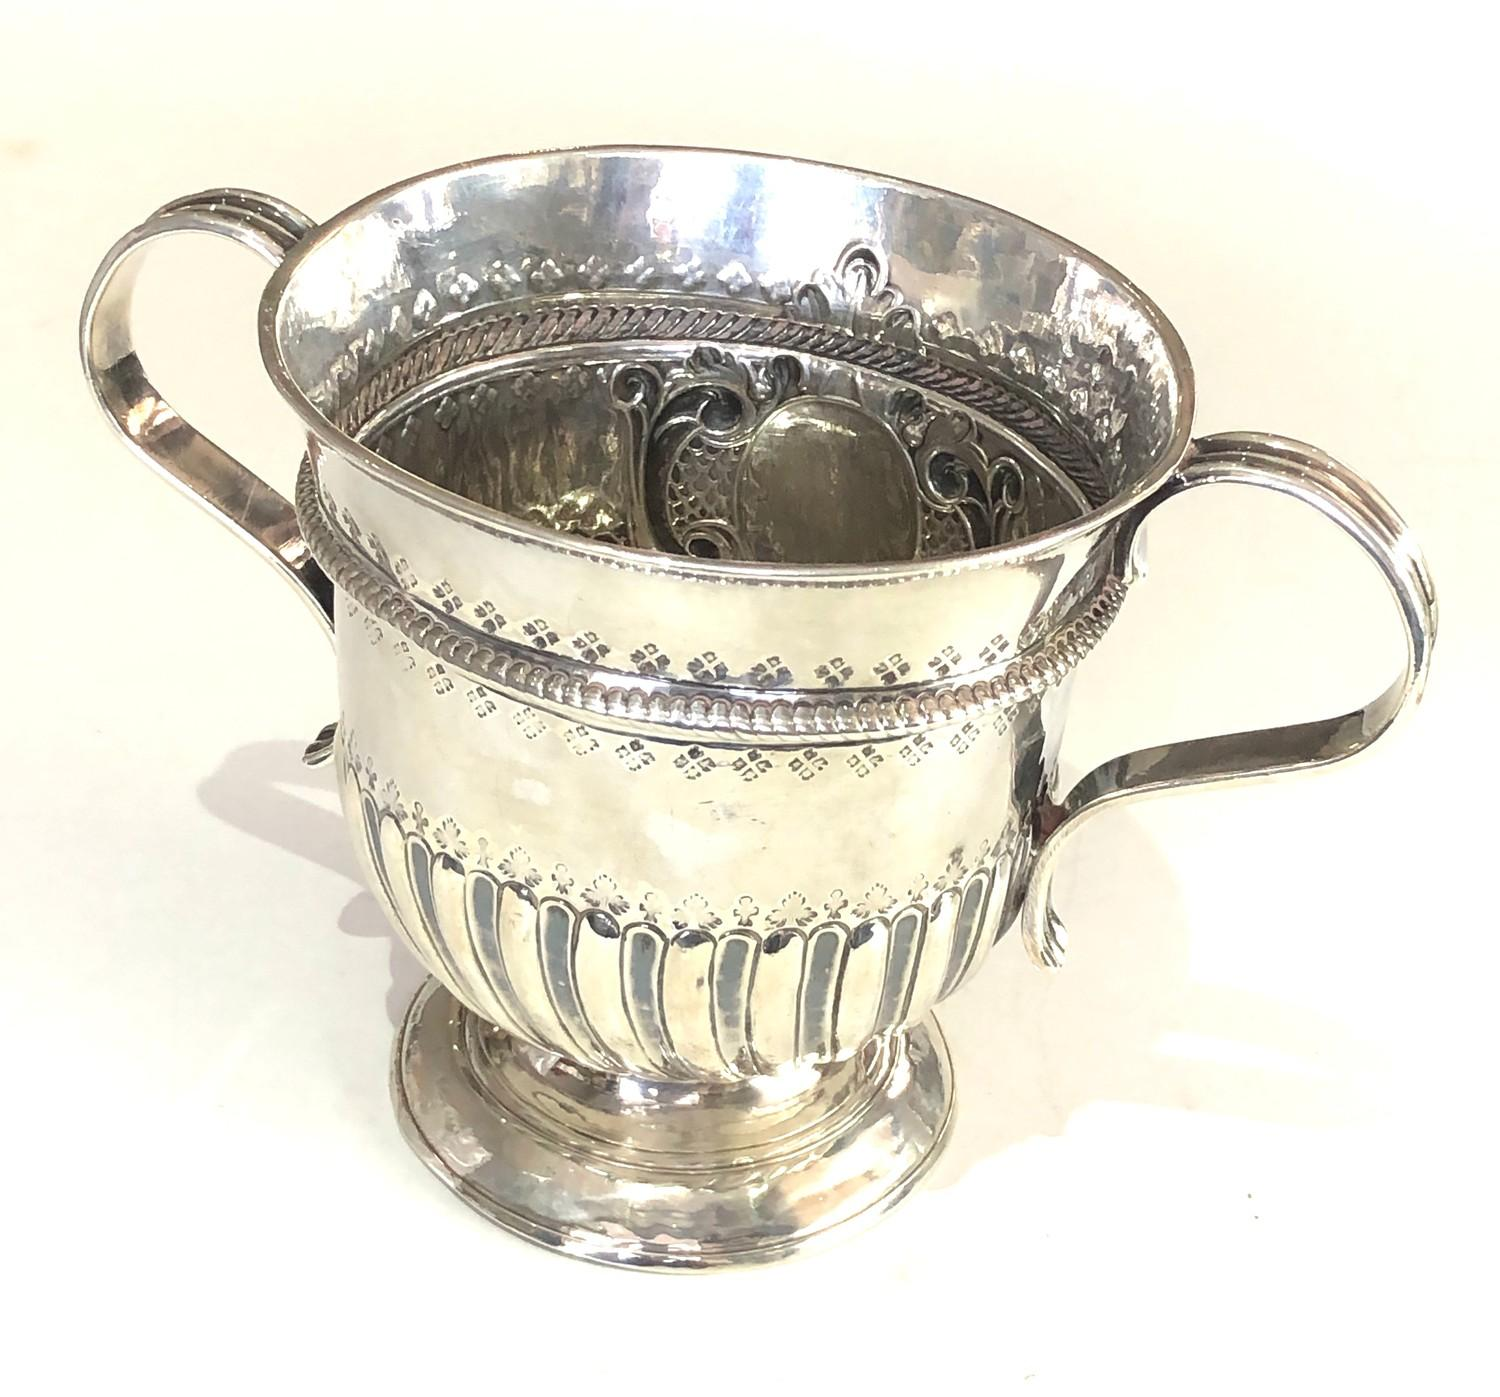 Rare George 1 silver Porringer full london silver hallmarks date letter B for 1717 measures approx - Image 4 of 9